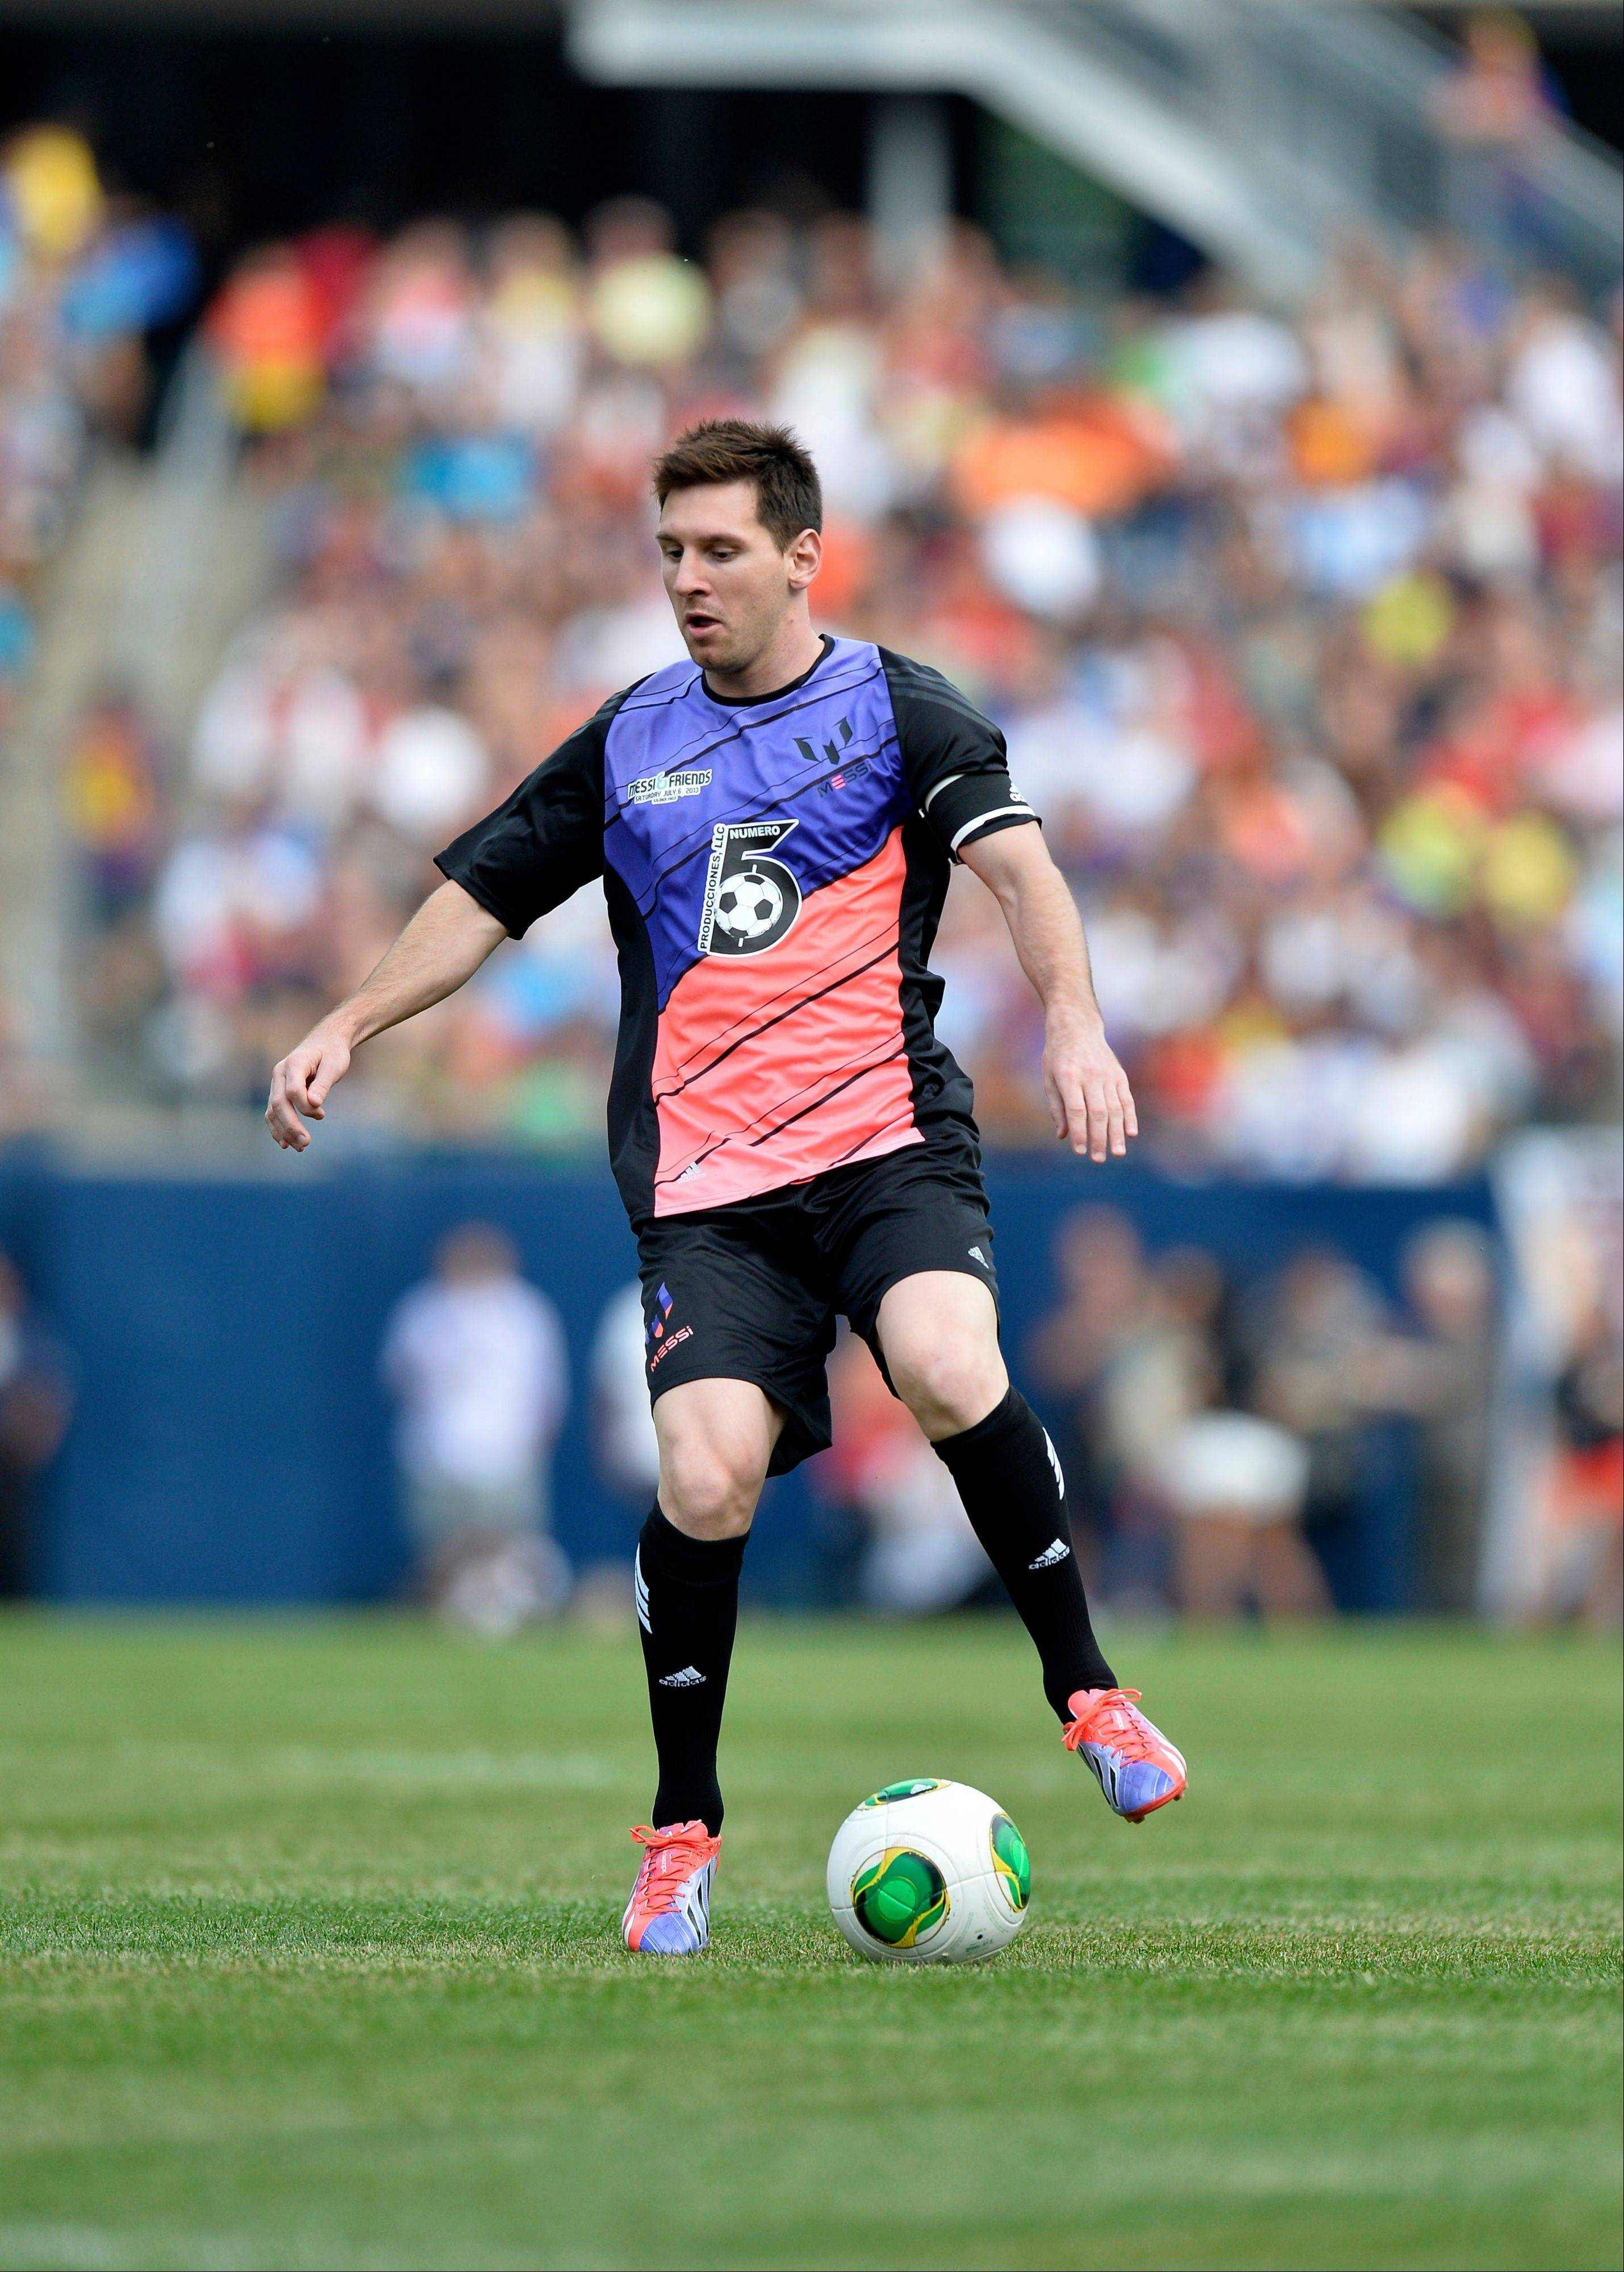 Messi's Friends' Lionel Messi handles the ball against the Rest of the World during the first half of the Messi and Friends charity soccer exhibition, Saturday, July 6, 2013 in Chicago.